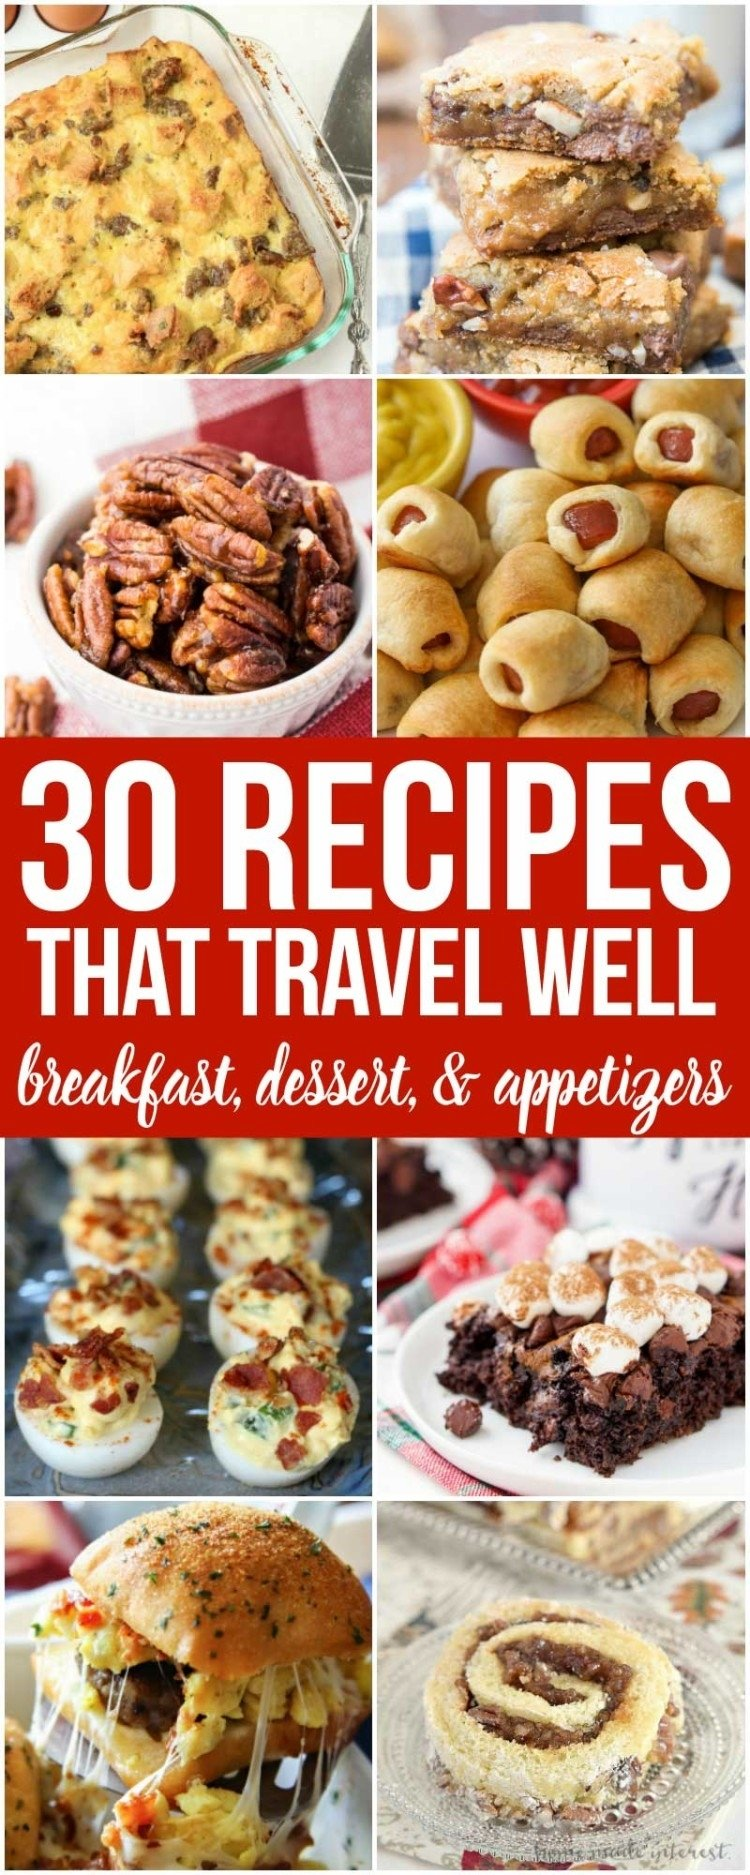 10 Elegant Cheap And Easy Potluck Ideas recipes that travel well easy recipes for potluck travelingmom 2 2021